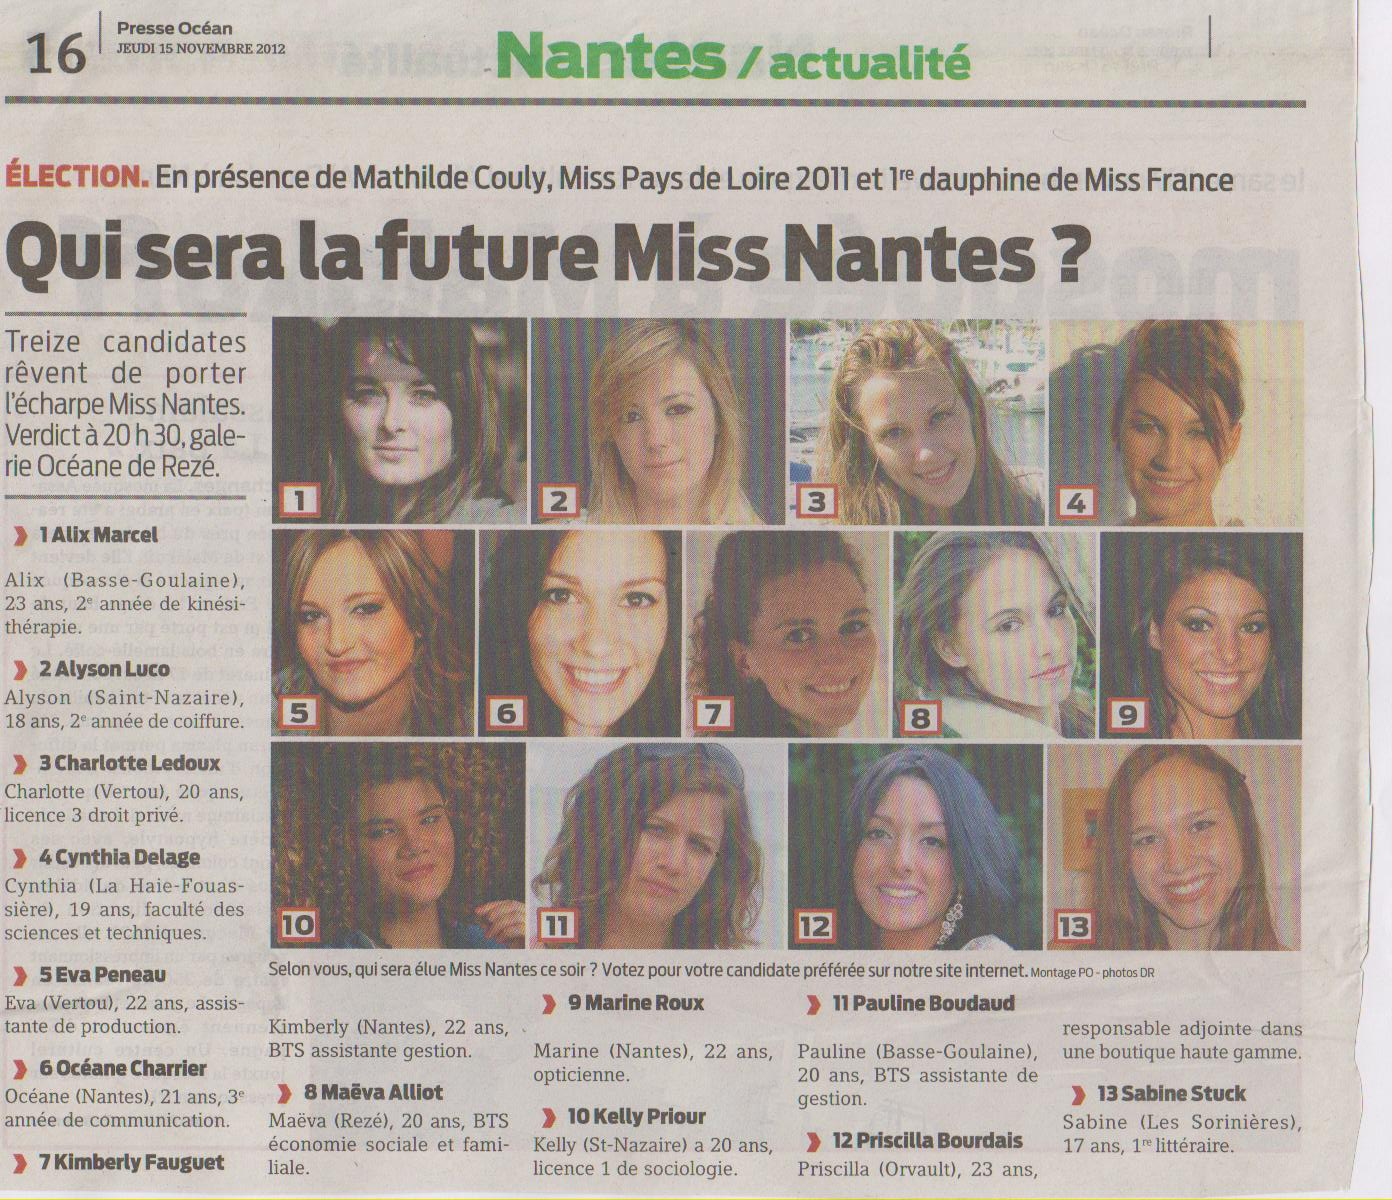 15-11-12 Future Miss Nantes